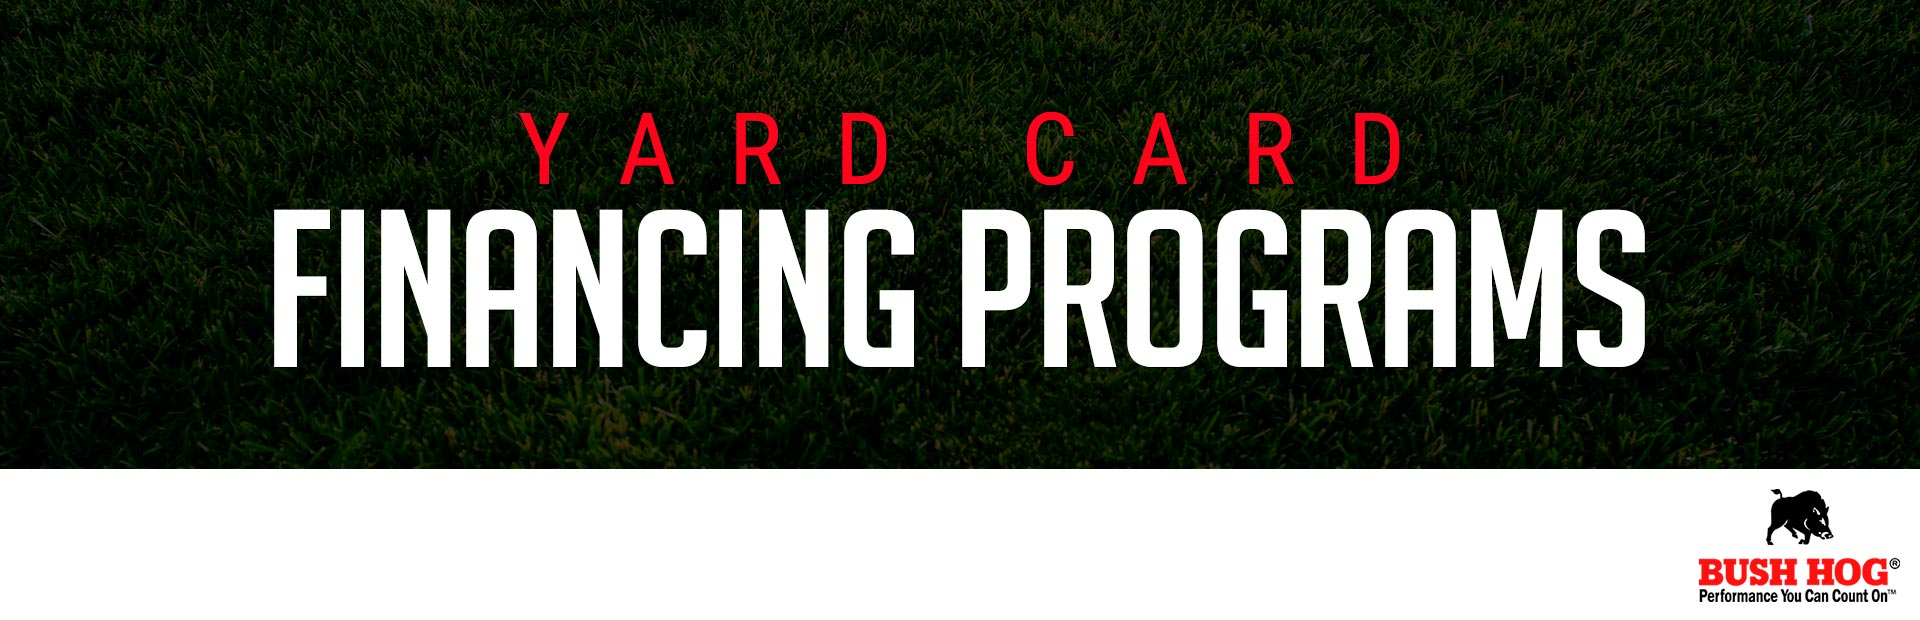 Bush Hog: Bush Hog – Yard Card Financing Programs